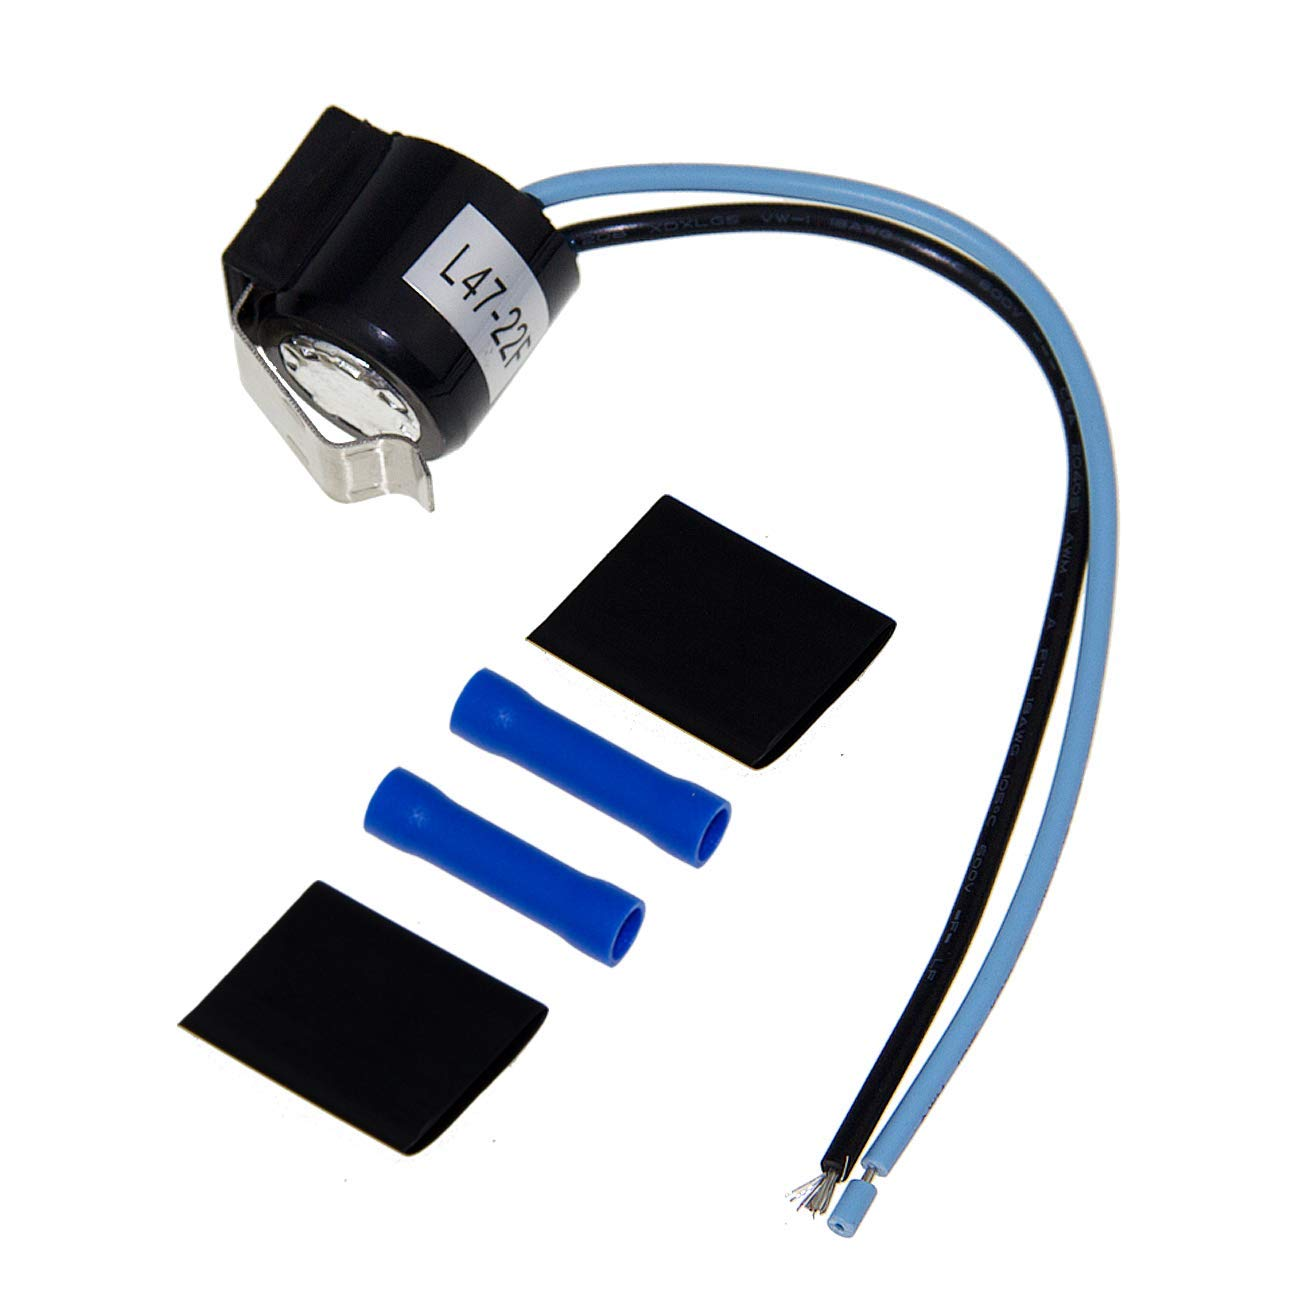 EXP5303918214 Refrigerator Defrost Thermostat Replaces 5303918214, AP2150145, 892545, AH469522, EA469522, PS469522 For Frigidaire, Gibson, Kelvinator, Kenmore …